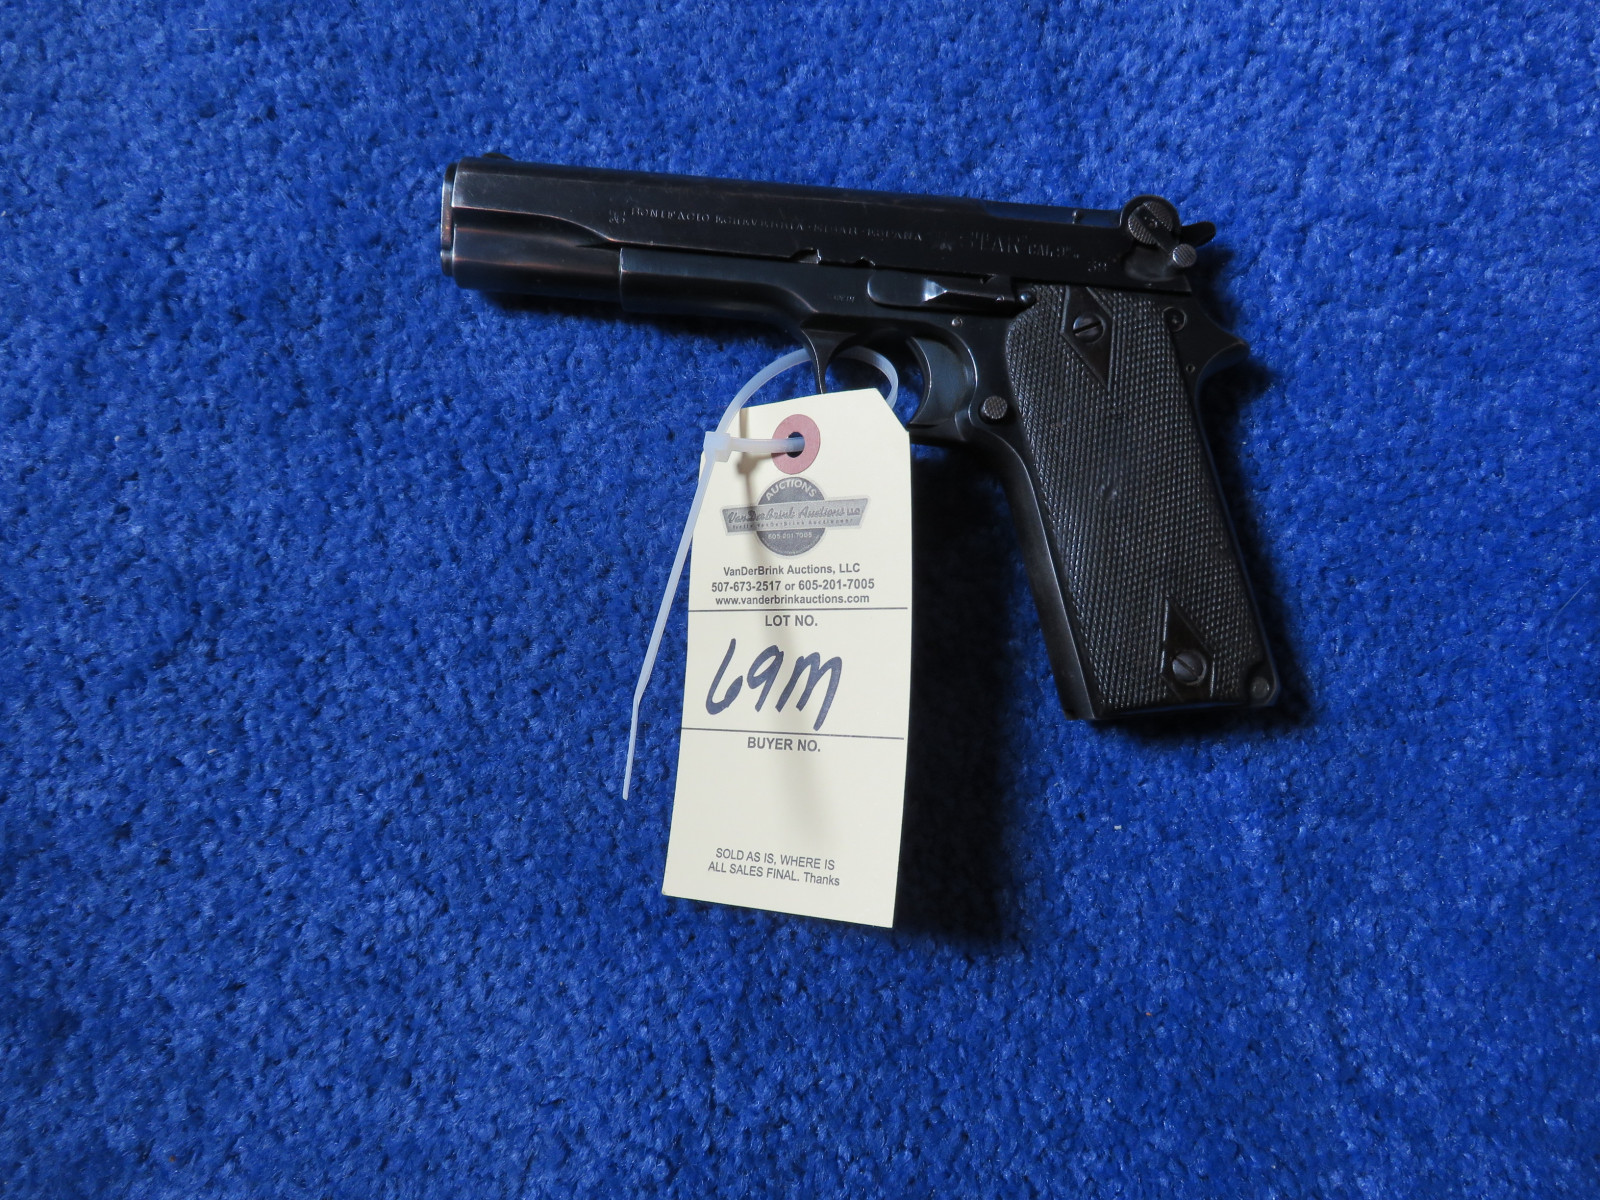 1921 Bonifacio Star 9MM Semi-Automatic Handgun - Image 2